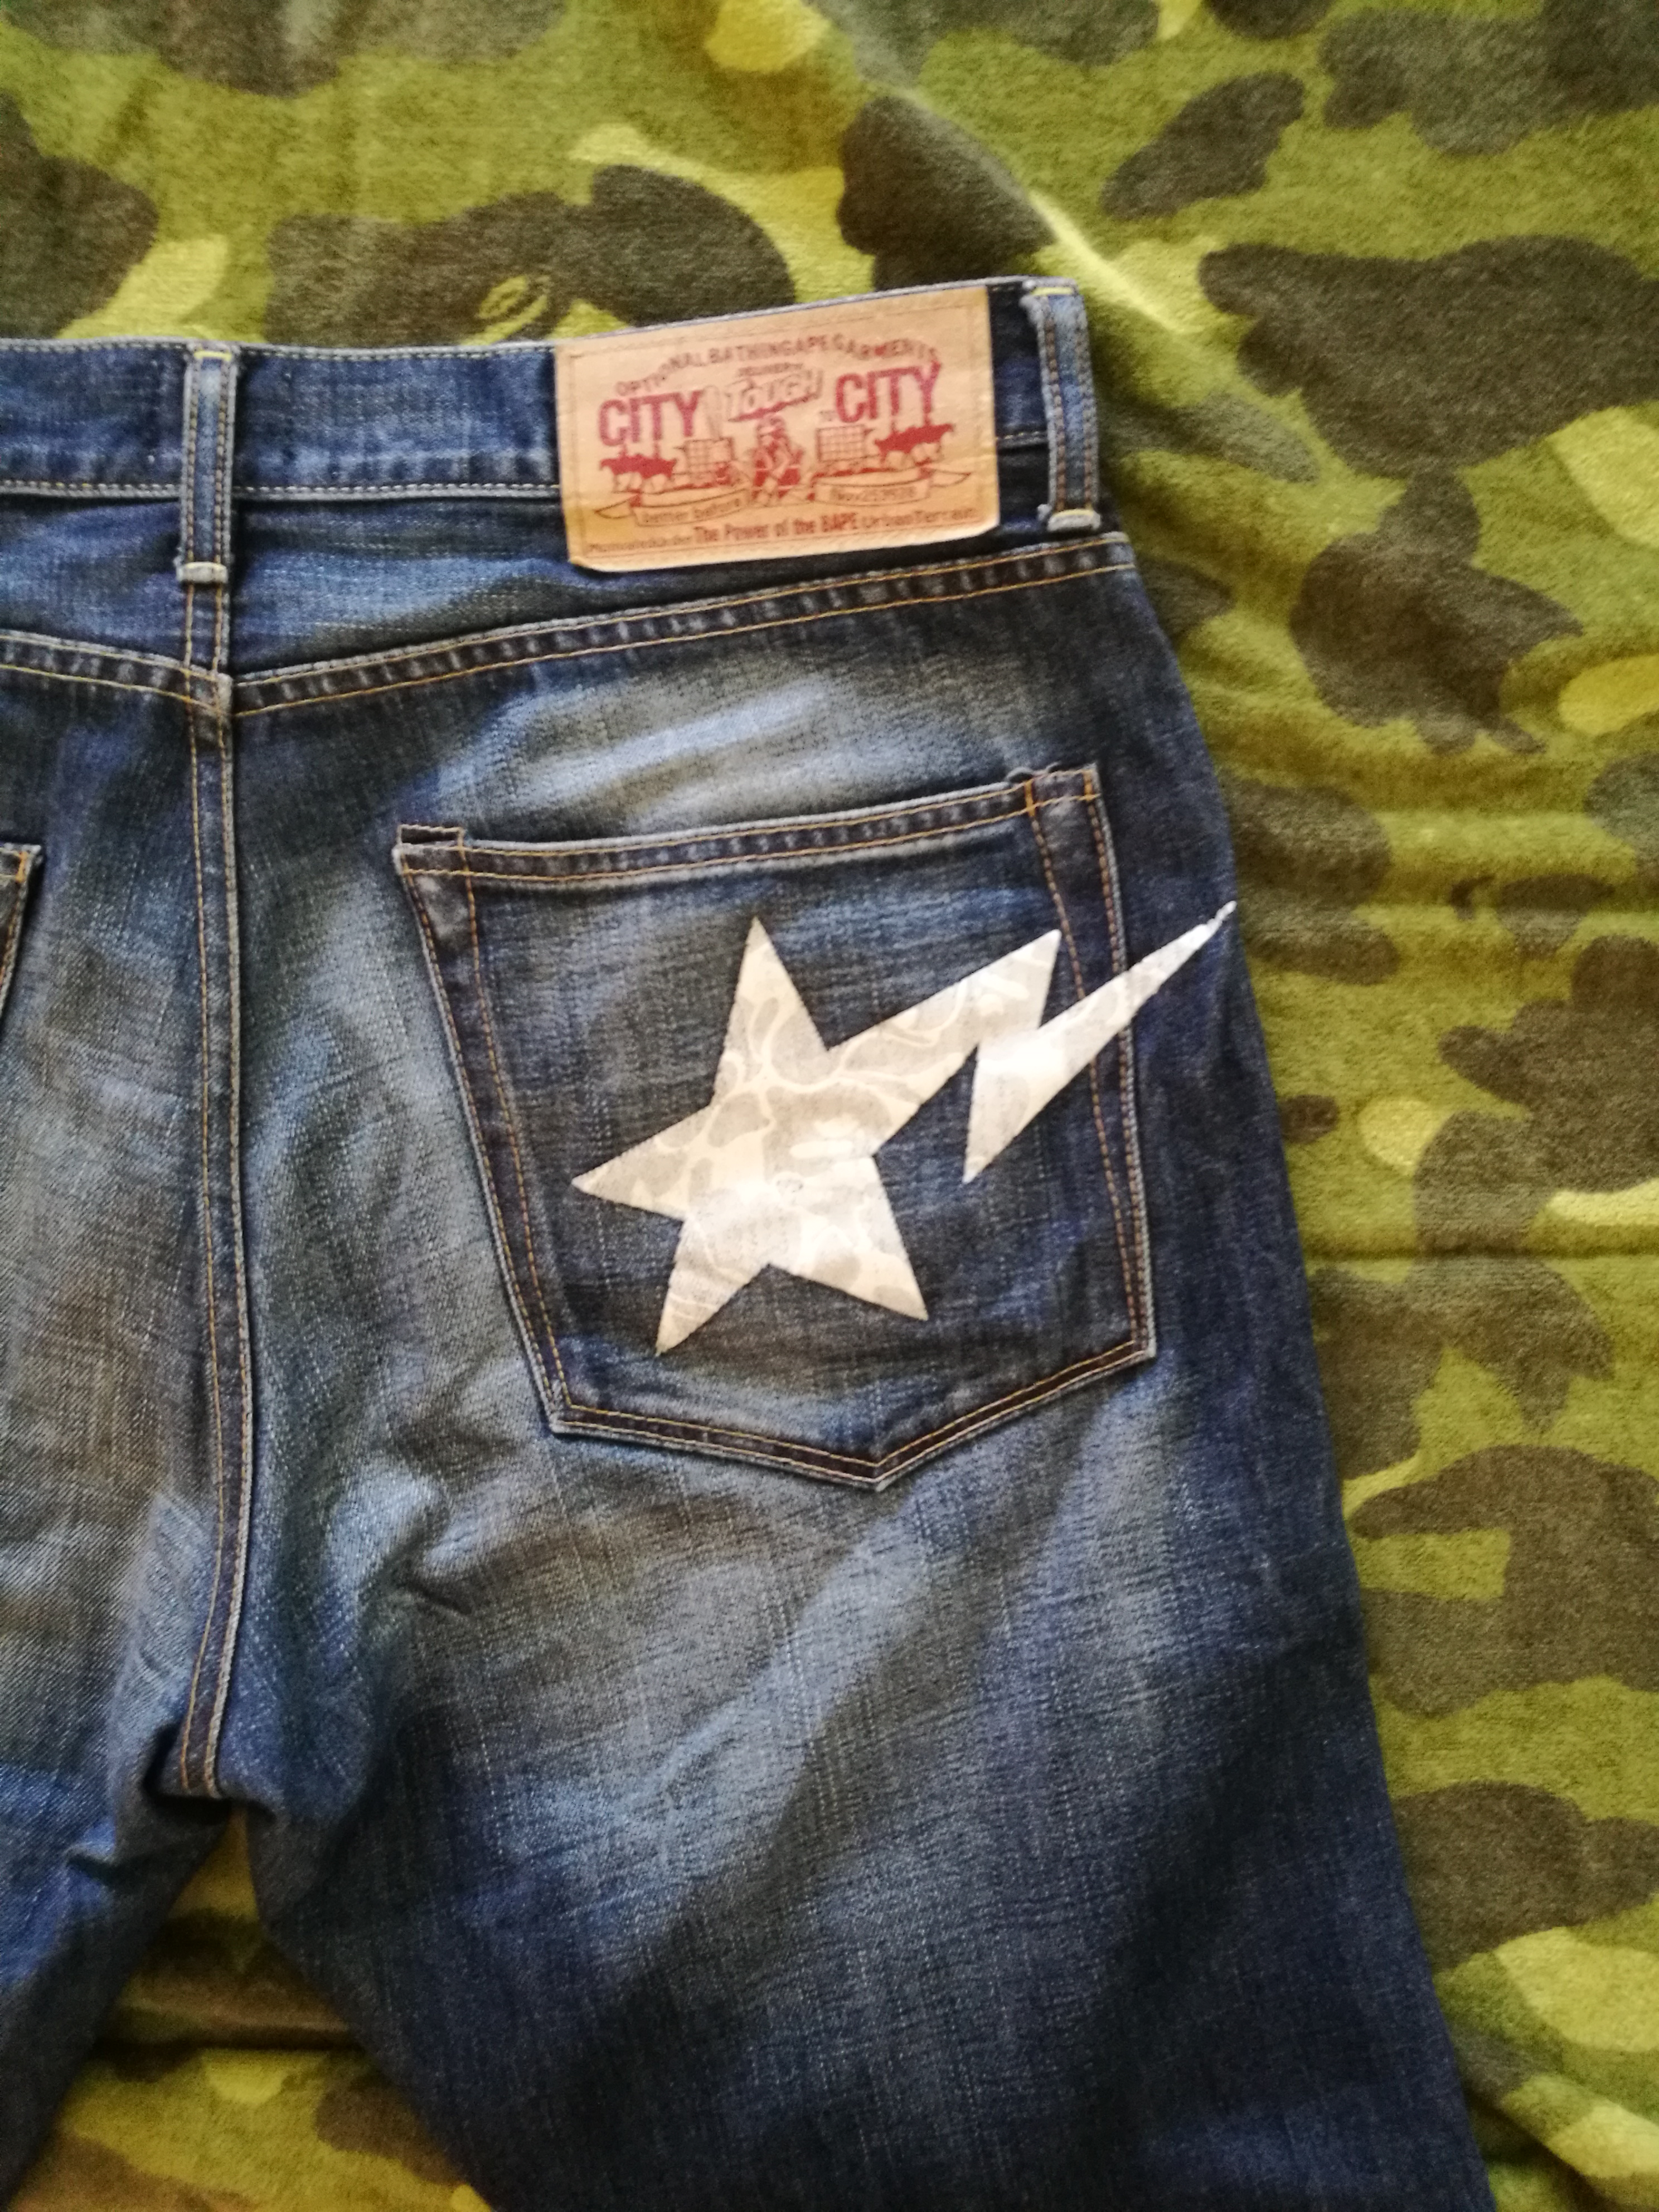 7110fee492bd Bape A Bathing Ape Denim Pants White Star Camo Bapestas Size 33 ...